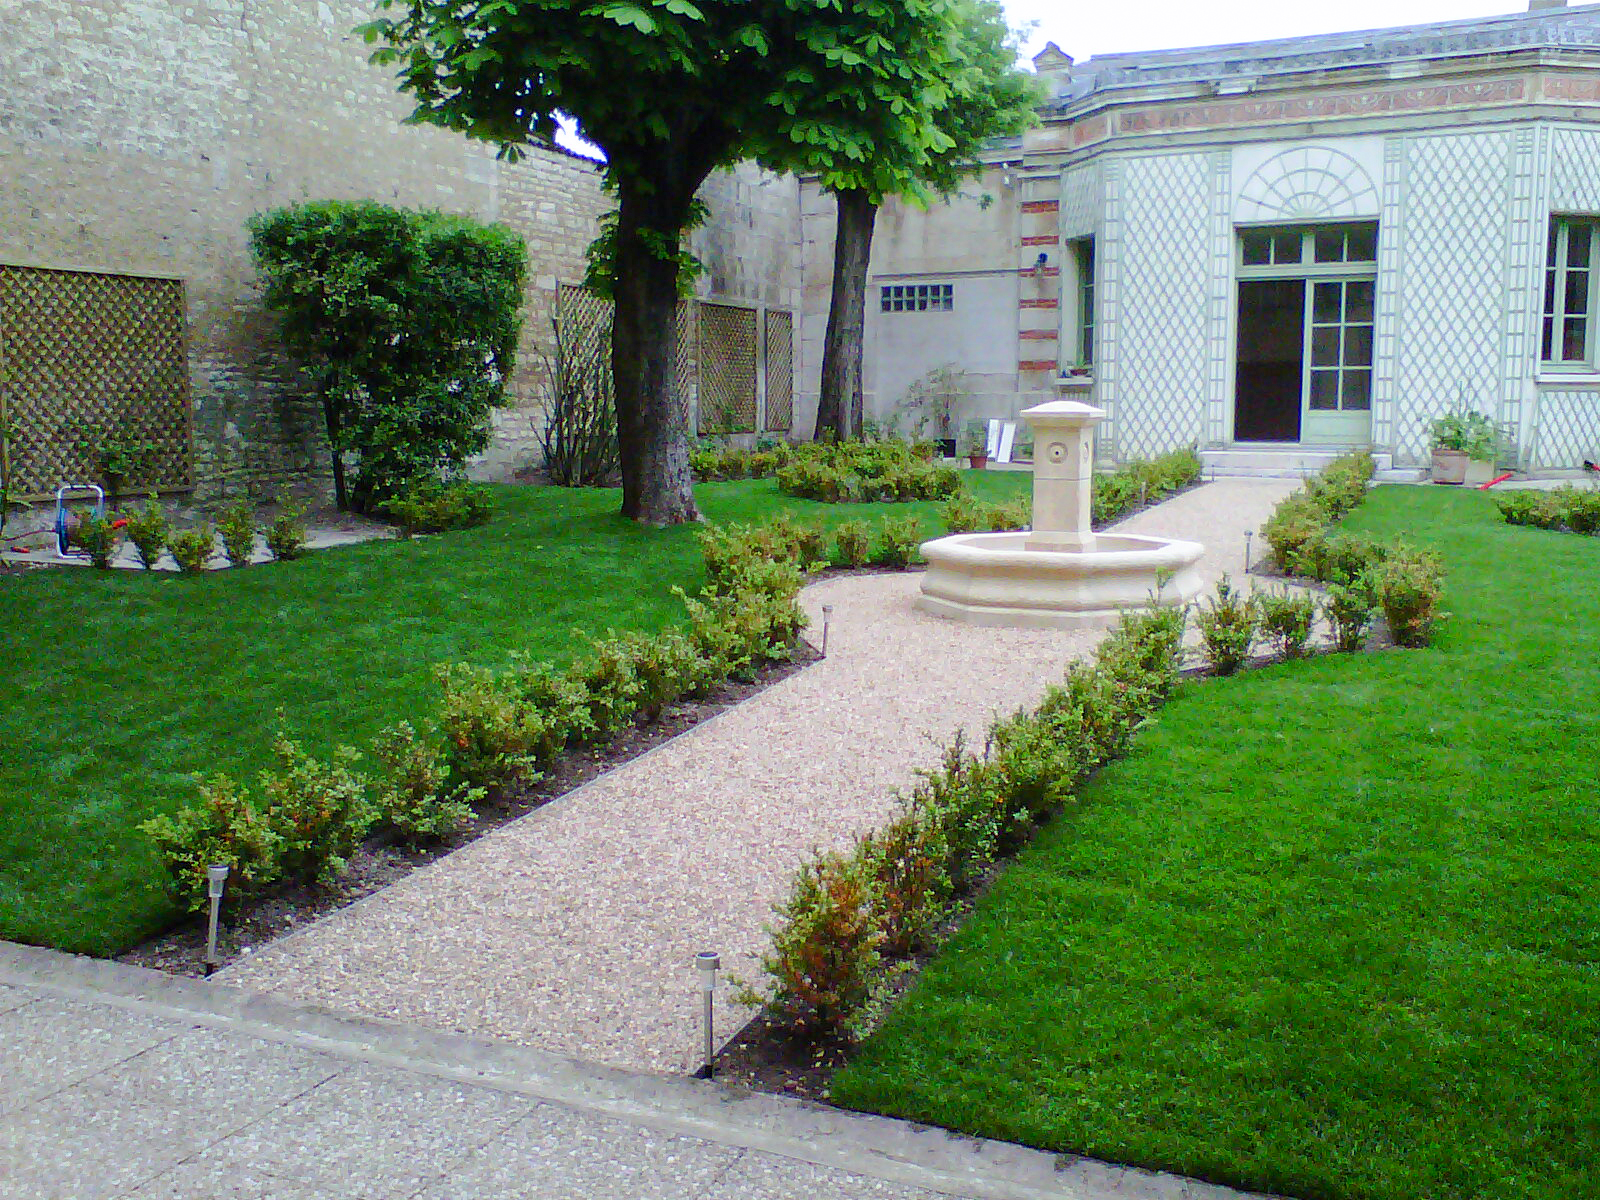 Jardin-fontaine-buis-idspace